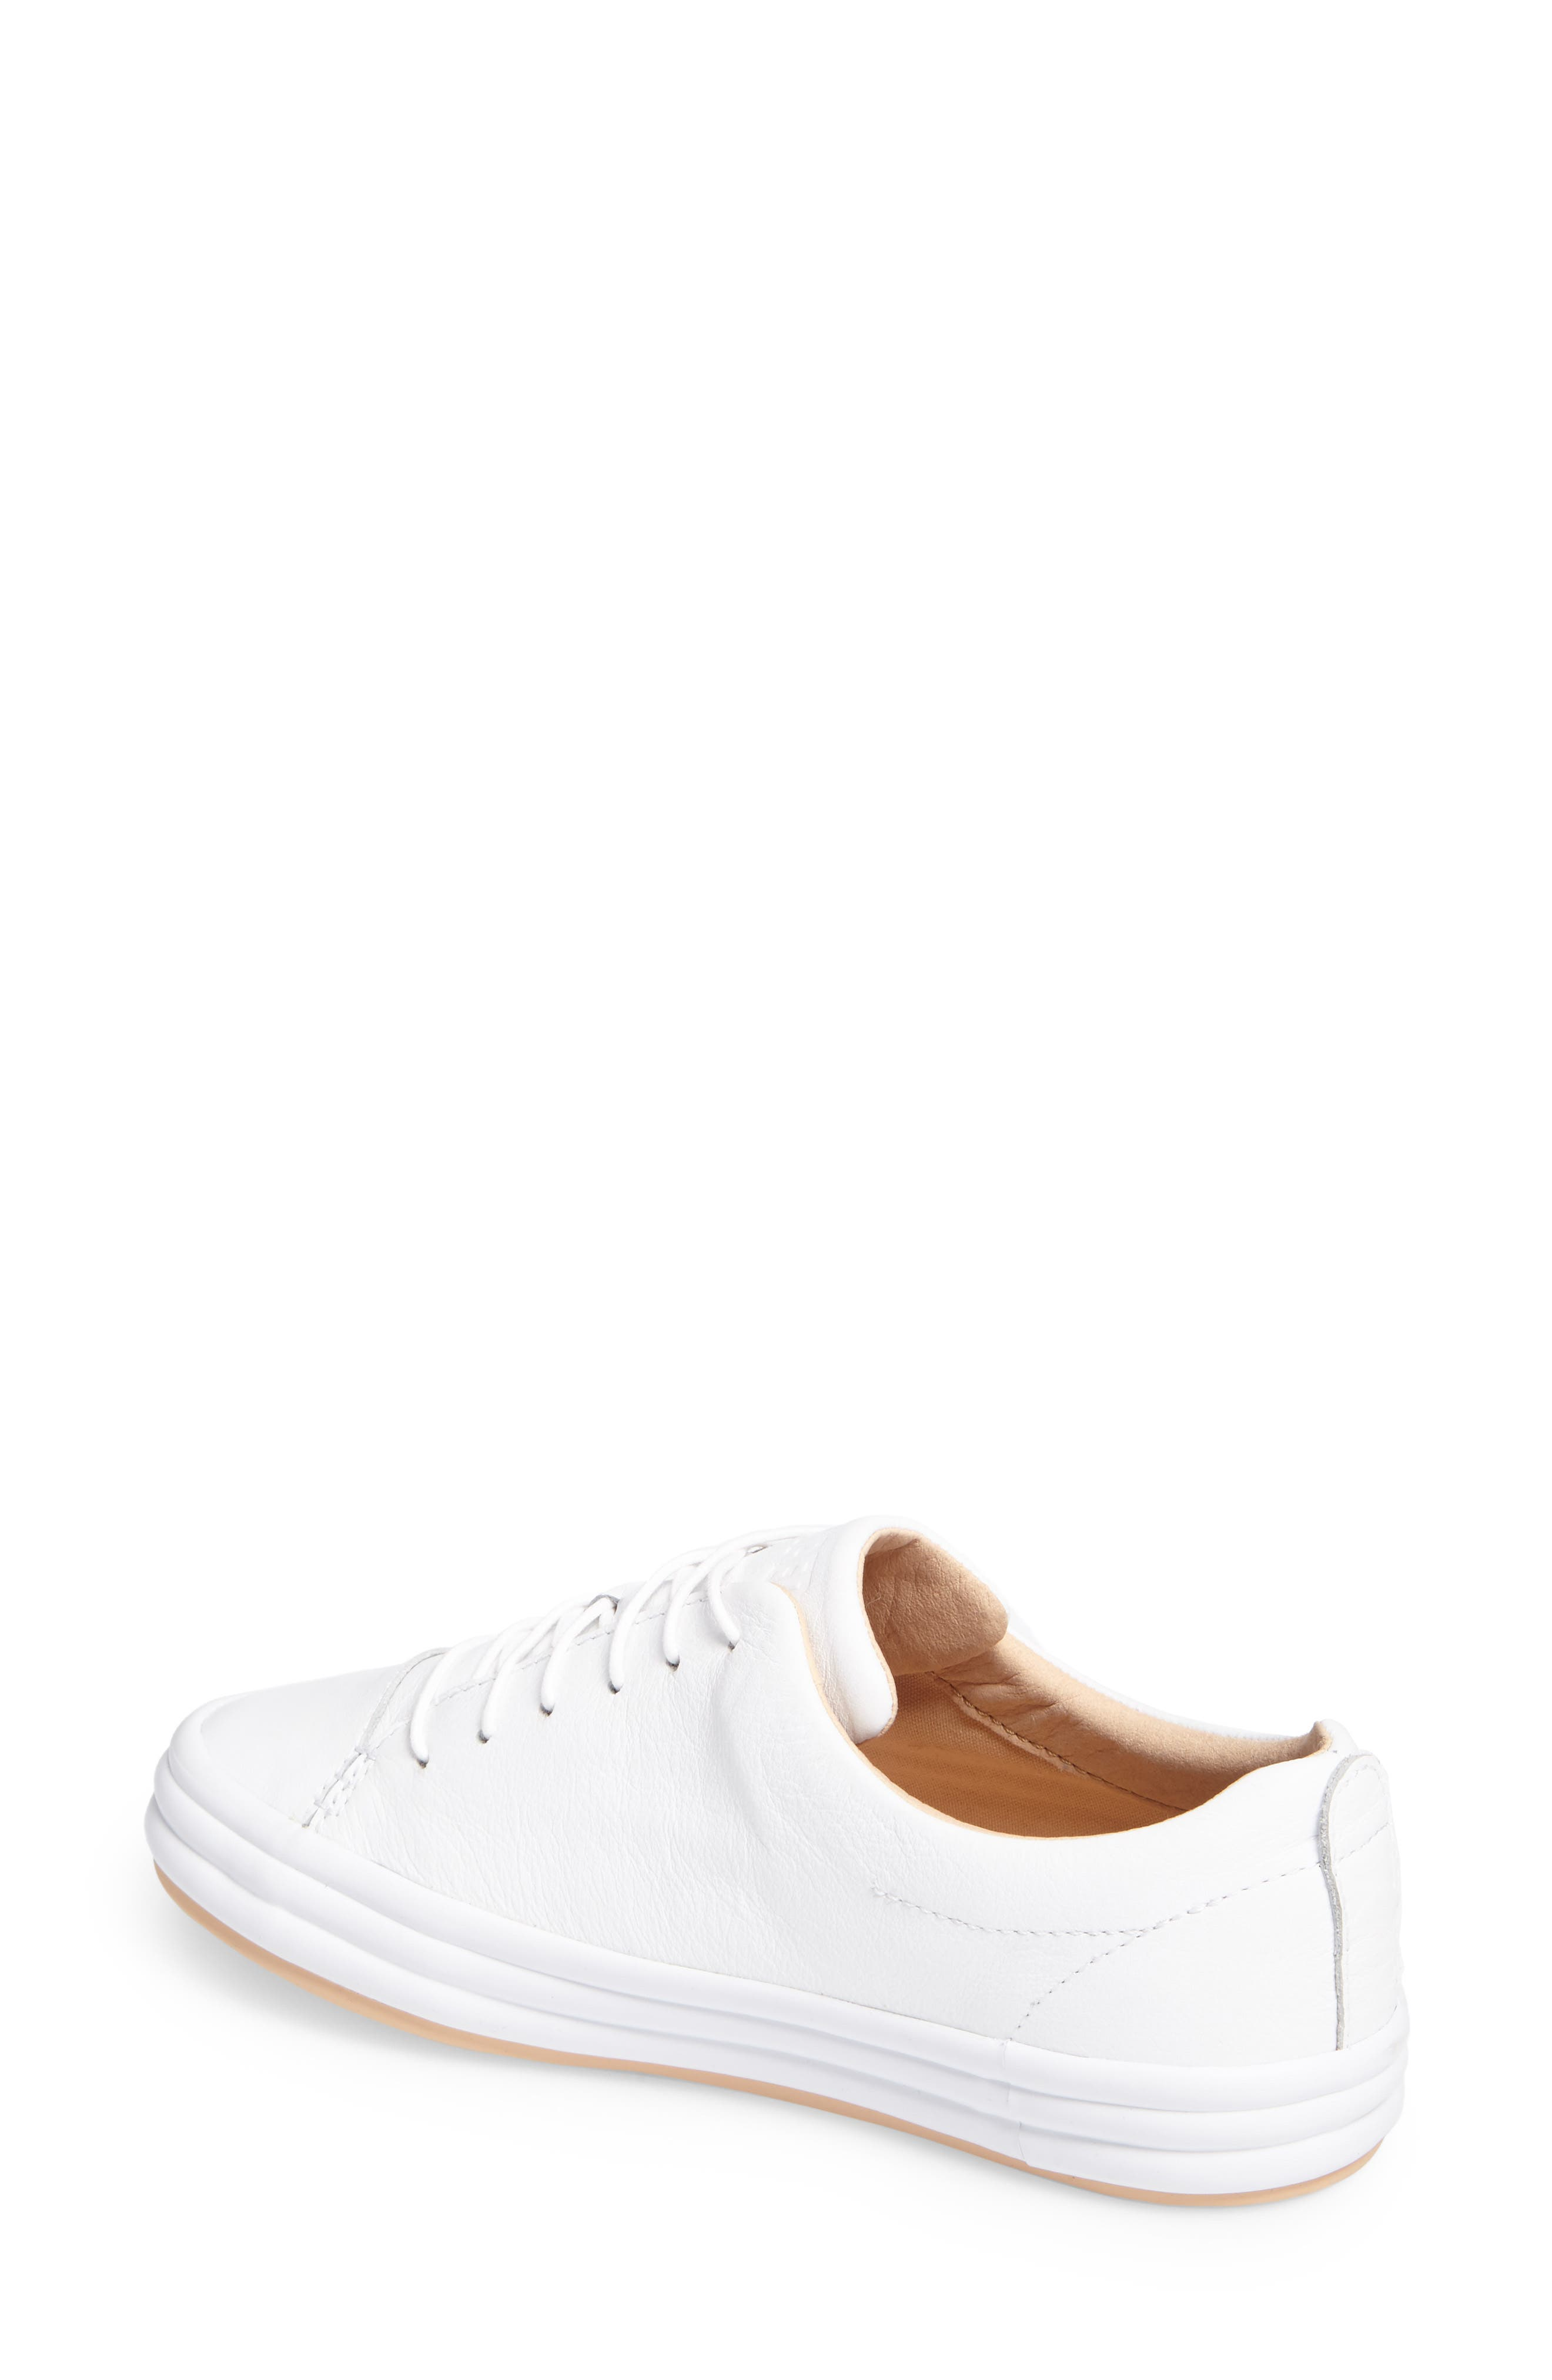 Hoops Sneaker,                             Alternate thumbnail 2, color,                             WHITE LEATHER